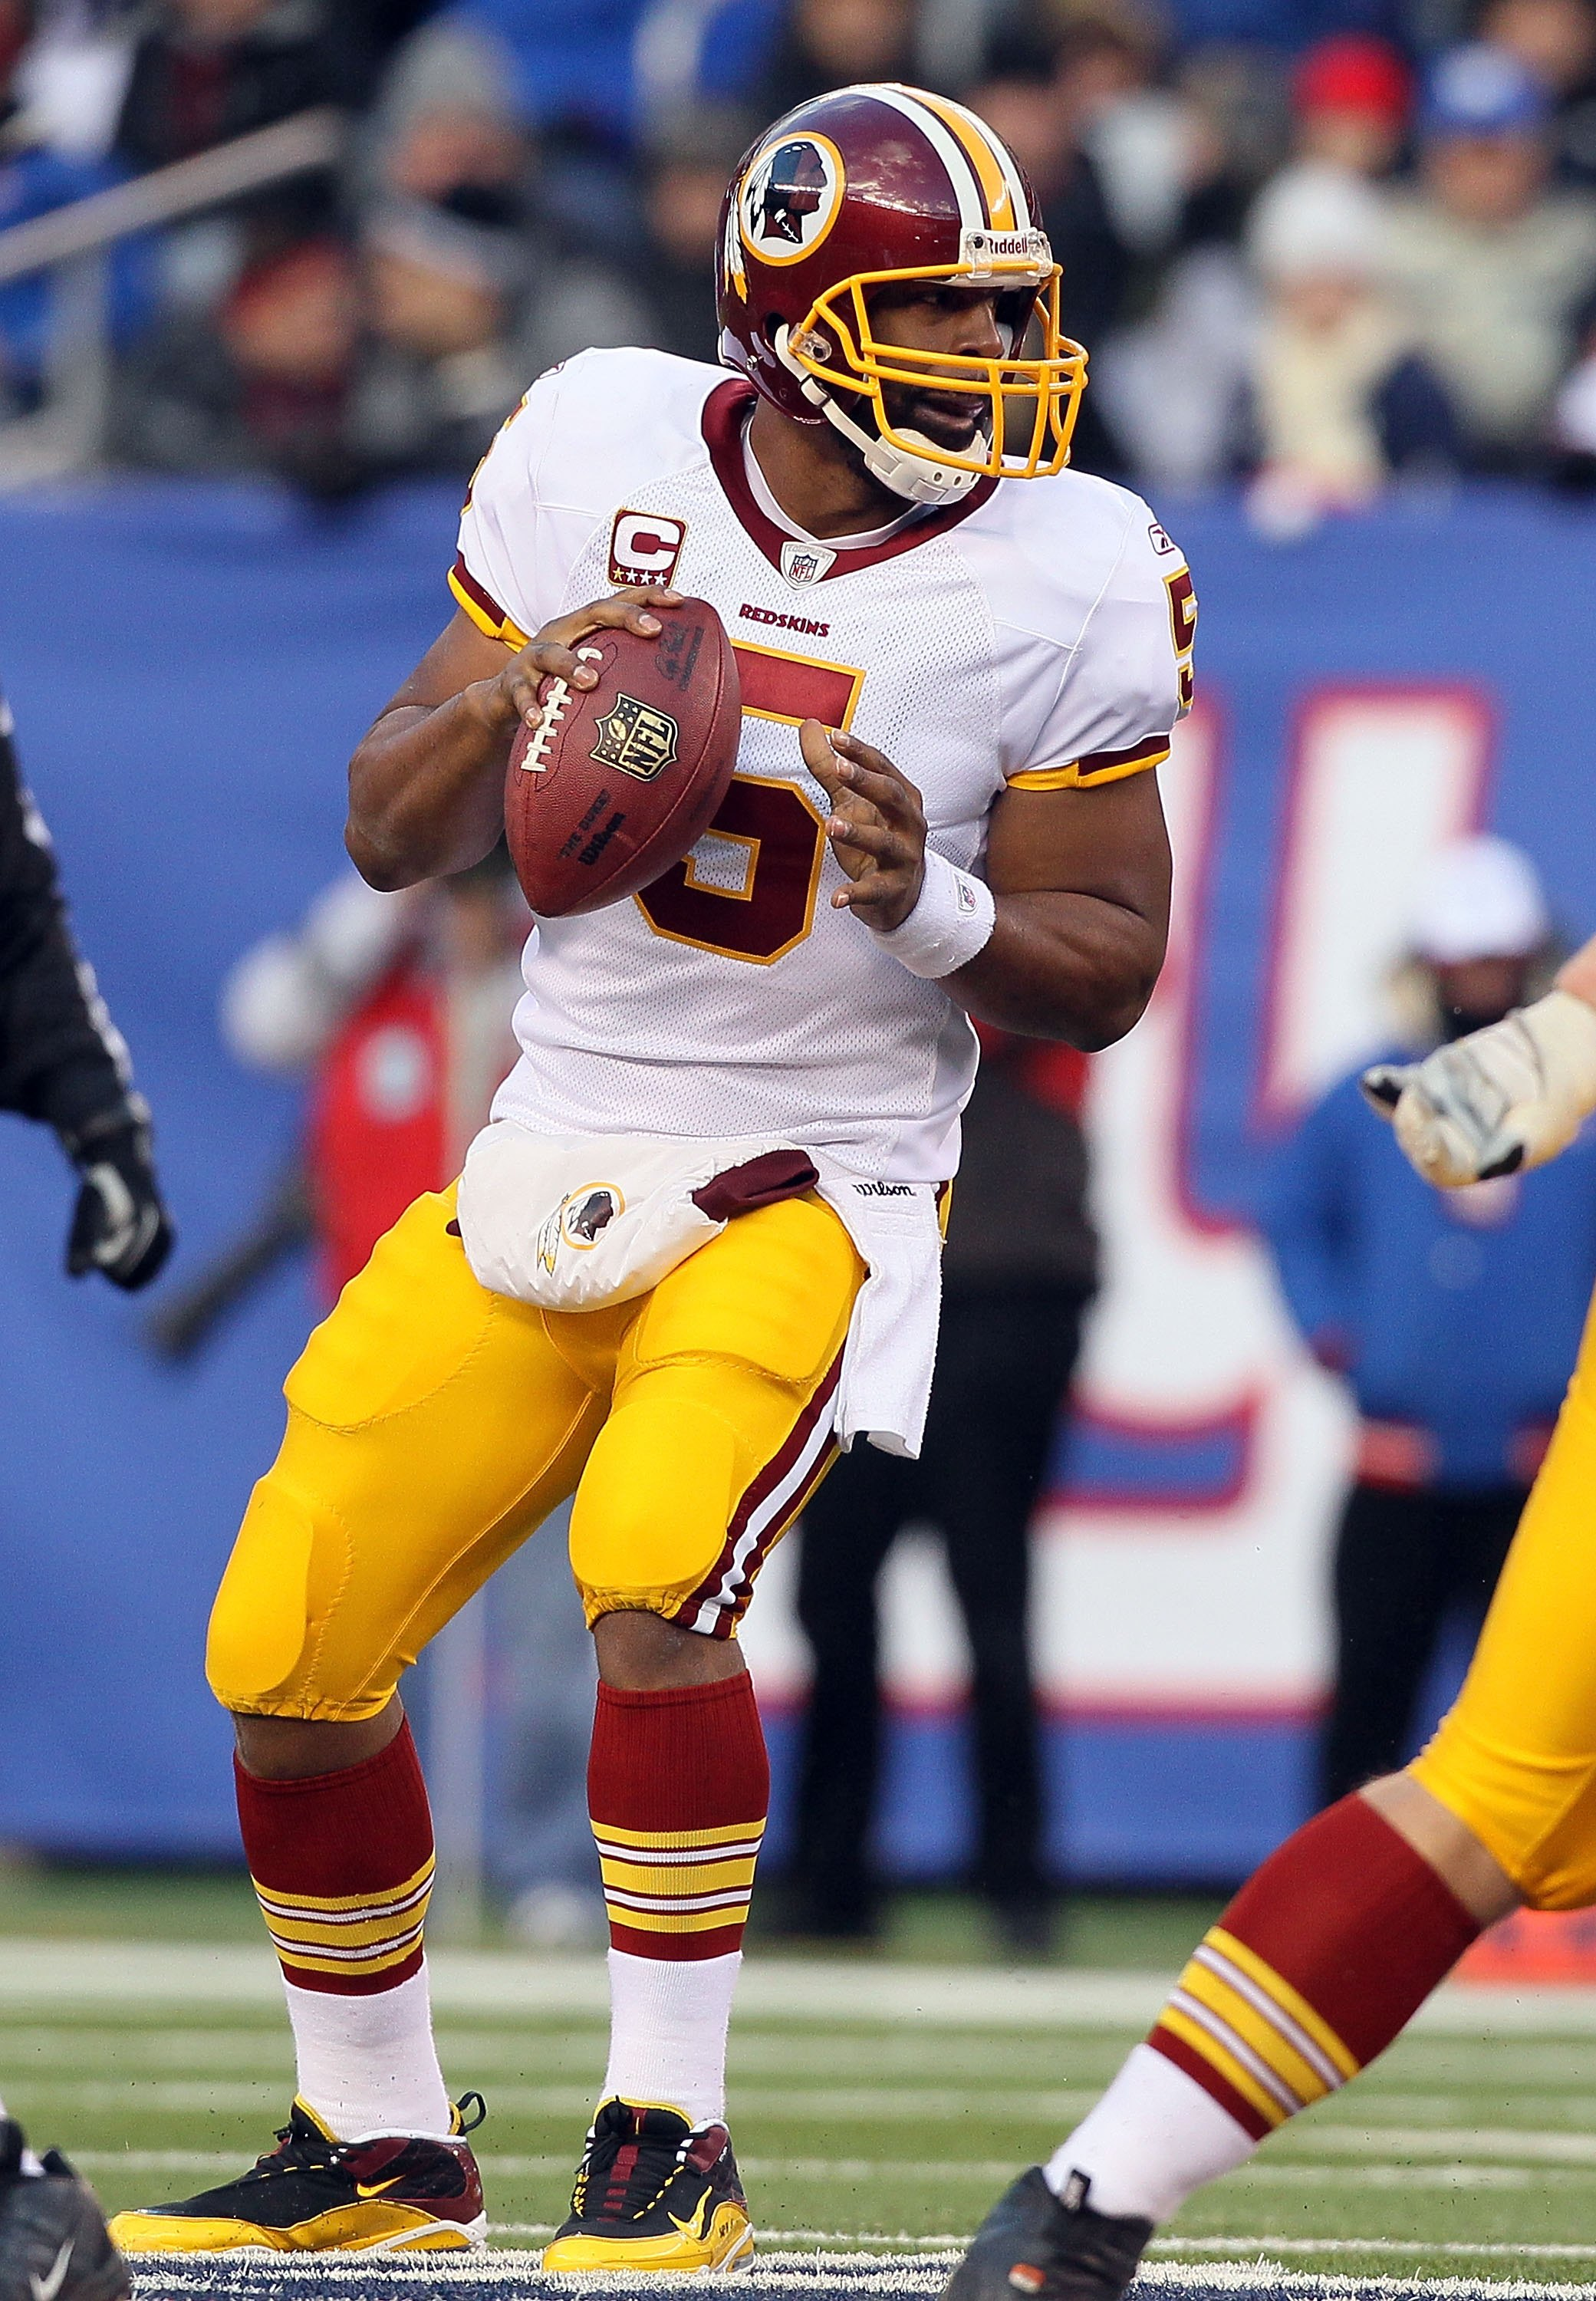 EAST RUTHERFORD, NJ - DECEMBER 05:  Donovan McNabb #5 of the Washington Redskins looks to throw a pass against the New York Giants on December 5, 2010 at the New Meadowlands Stadium in East Rutherford, New Jersey. The Giants defeated the Redskins 31-7.  (